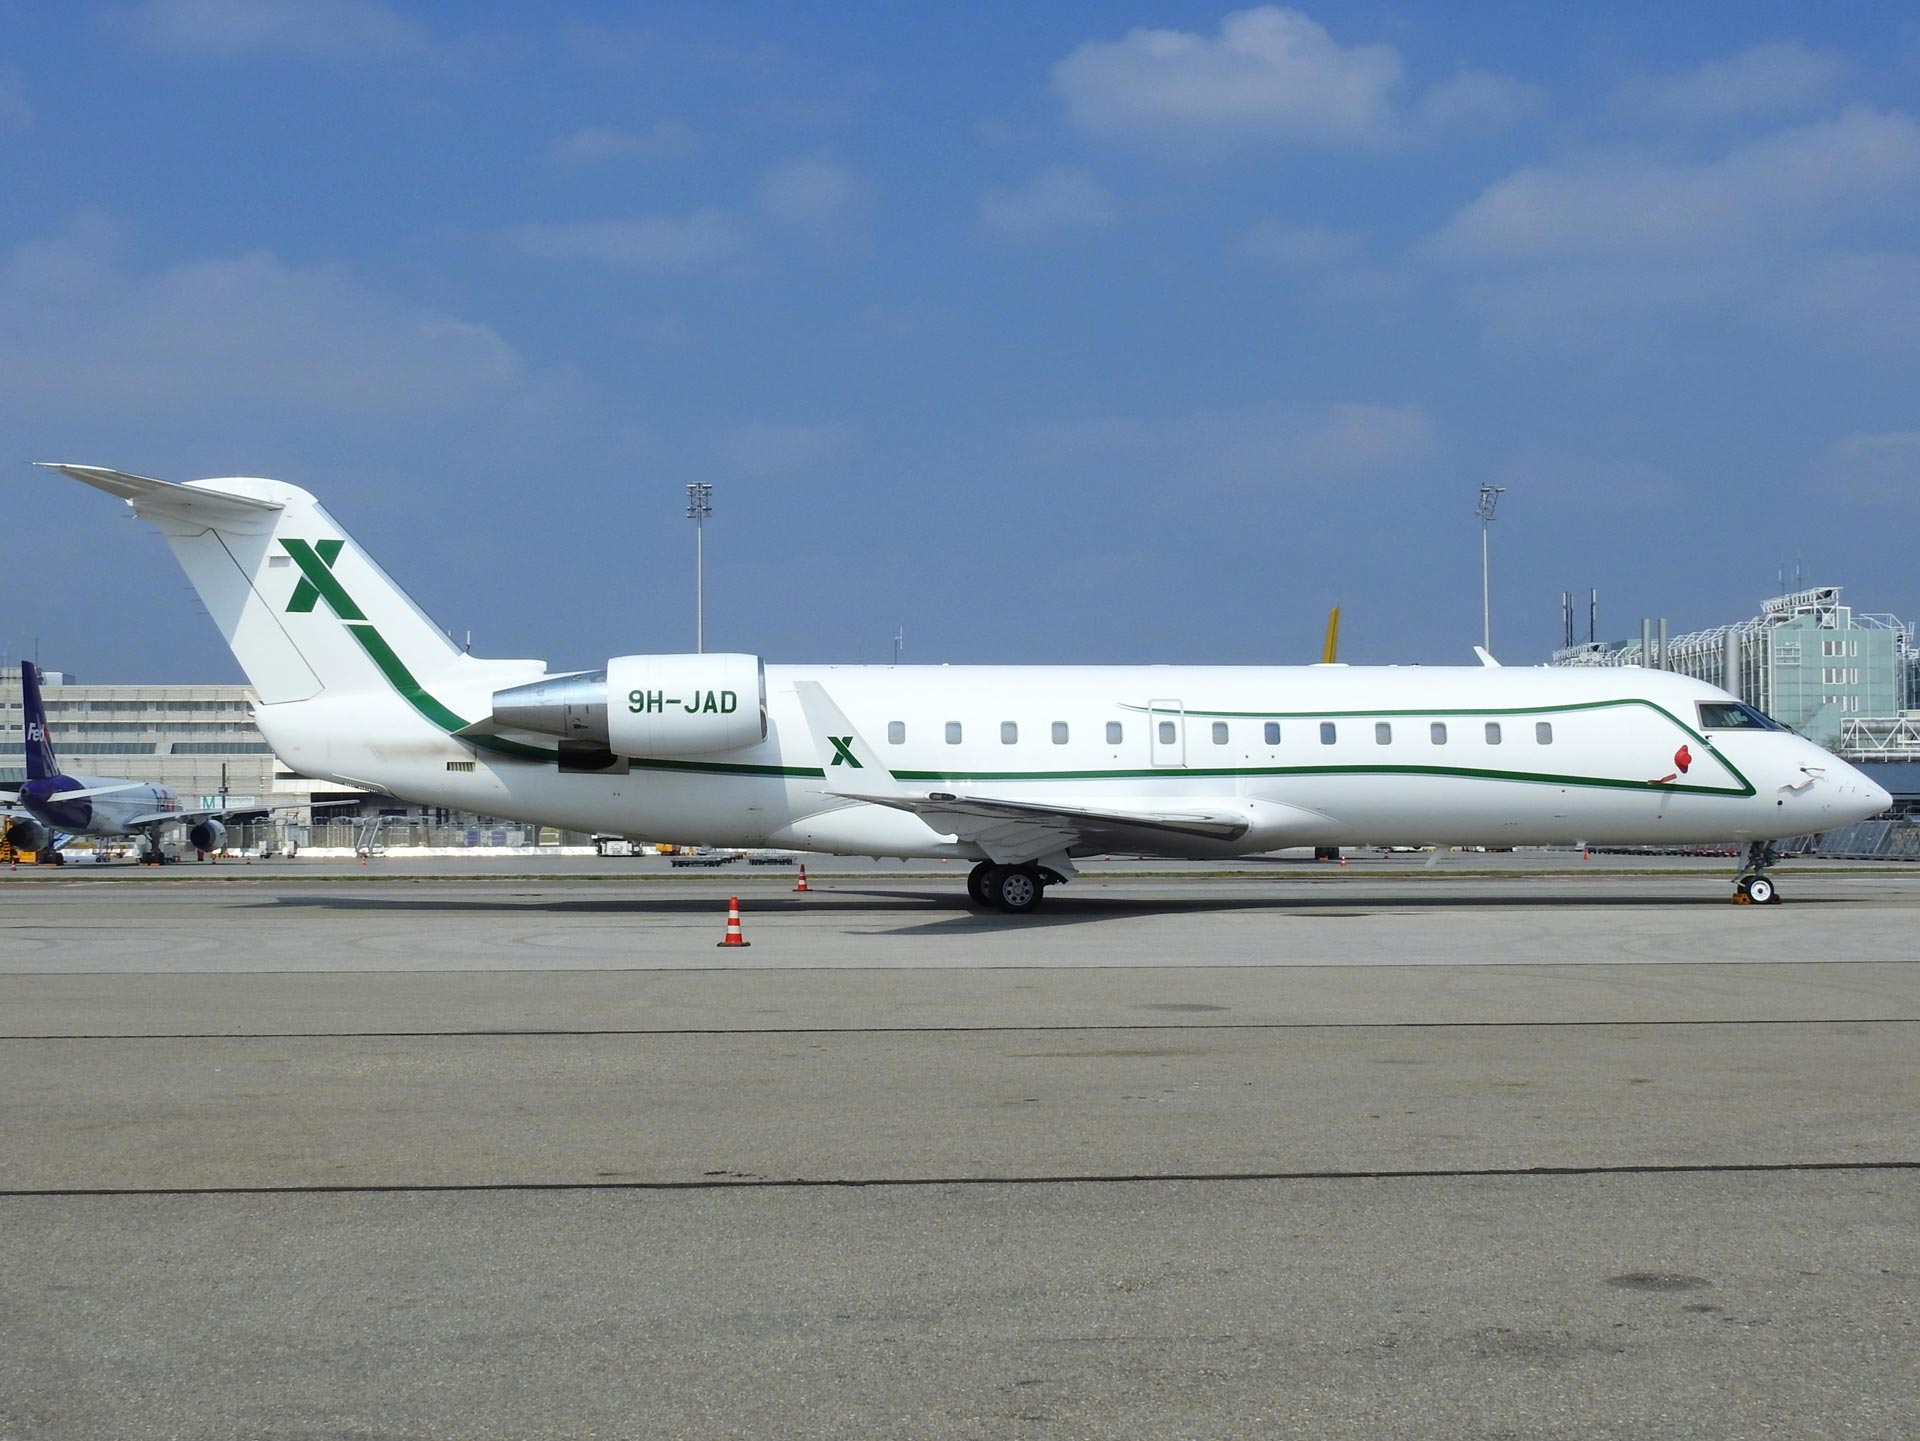 9H-JAD-AIR-X-Charter-Bombardier-Challenger-850-(CL-600-2B19)-(5)